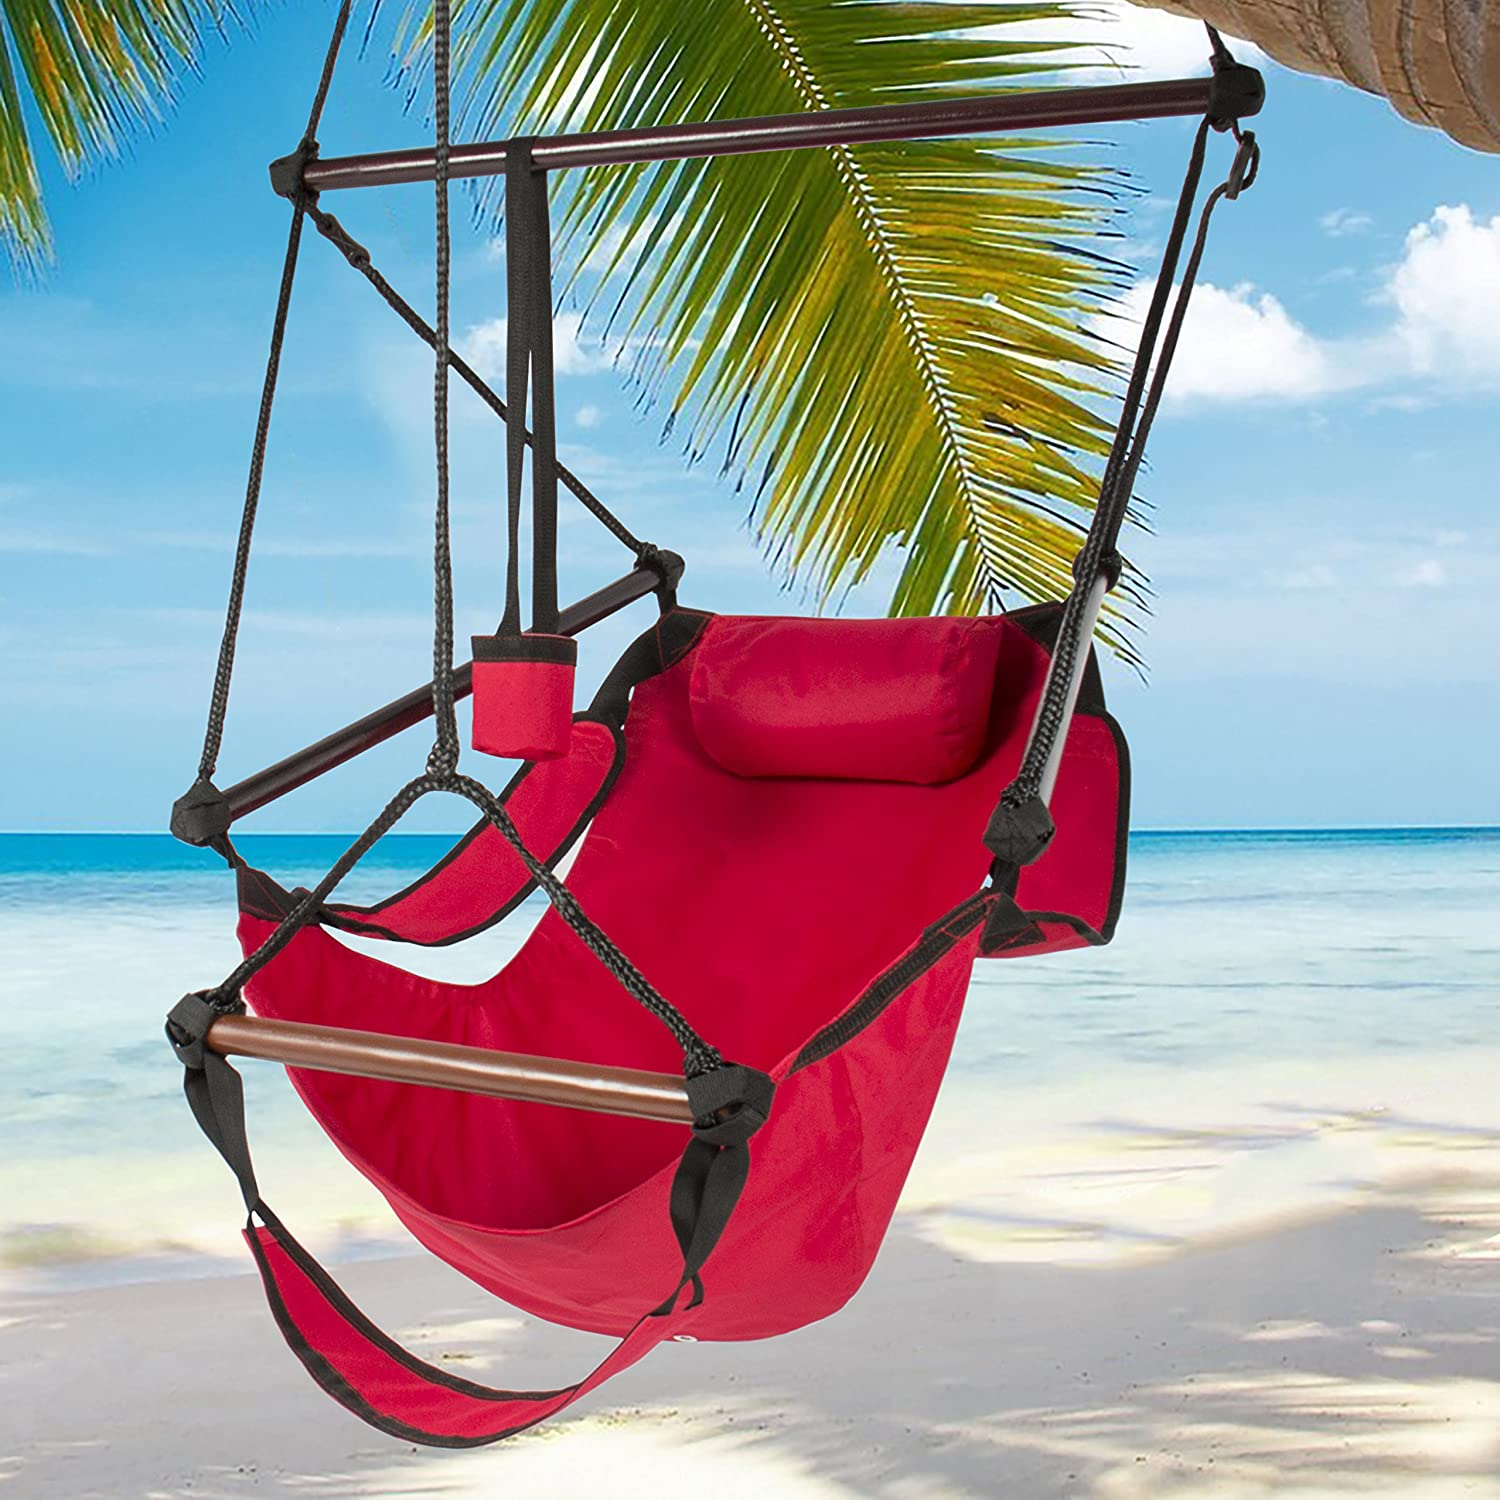 Best Choice Products Hammock Hanging Chair Air Deluxe - Red - 250 lbs Weight Capacity